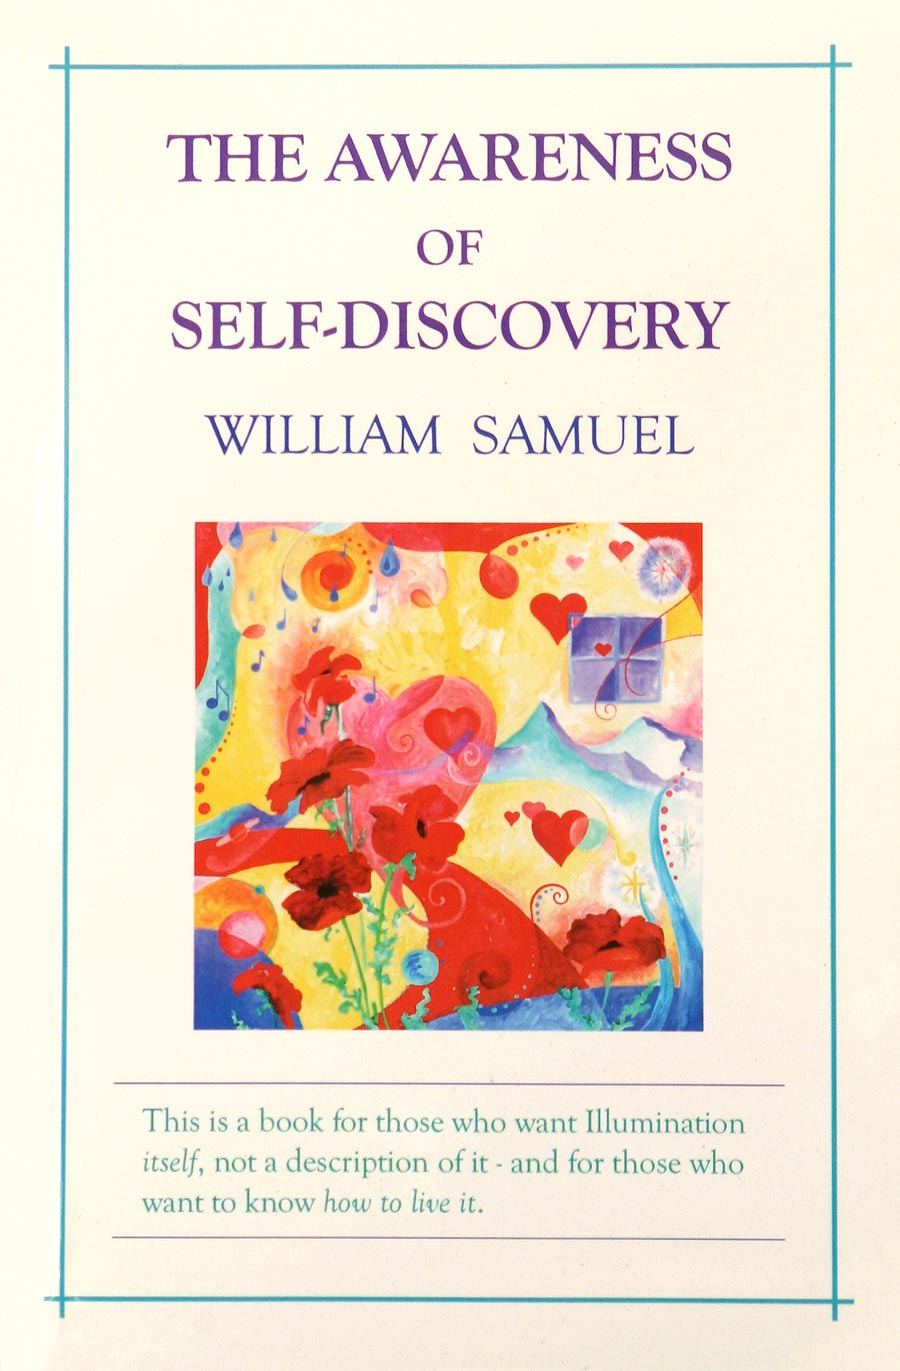 Awareness of Self-Discovery by William Samuel